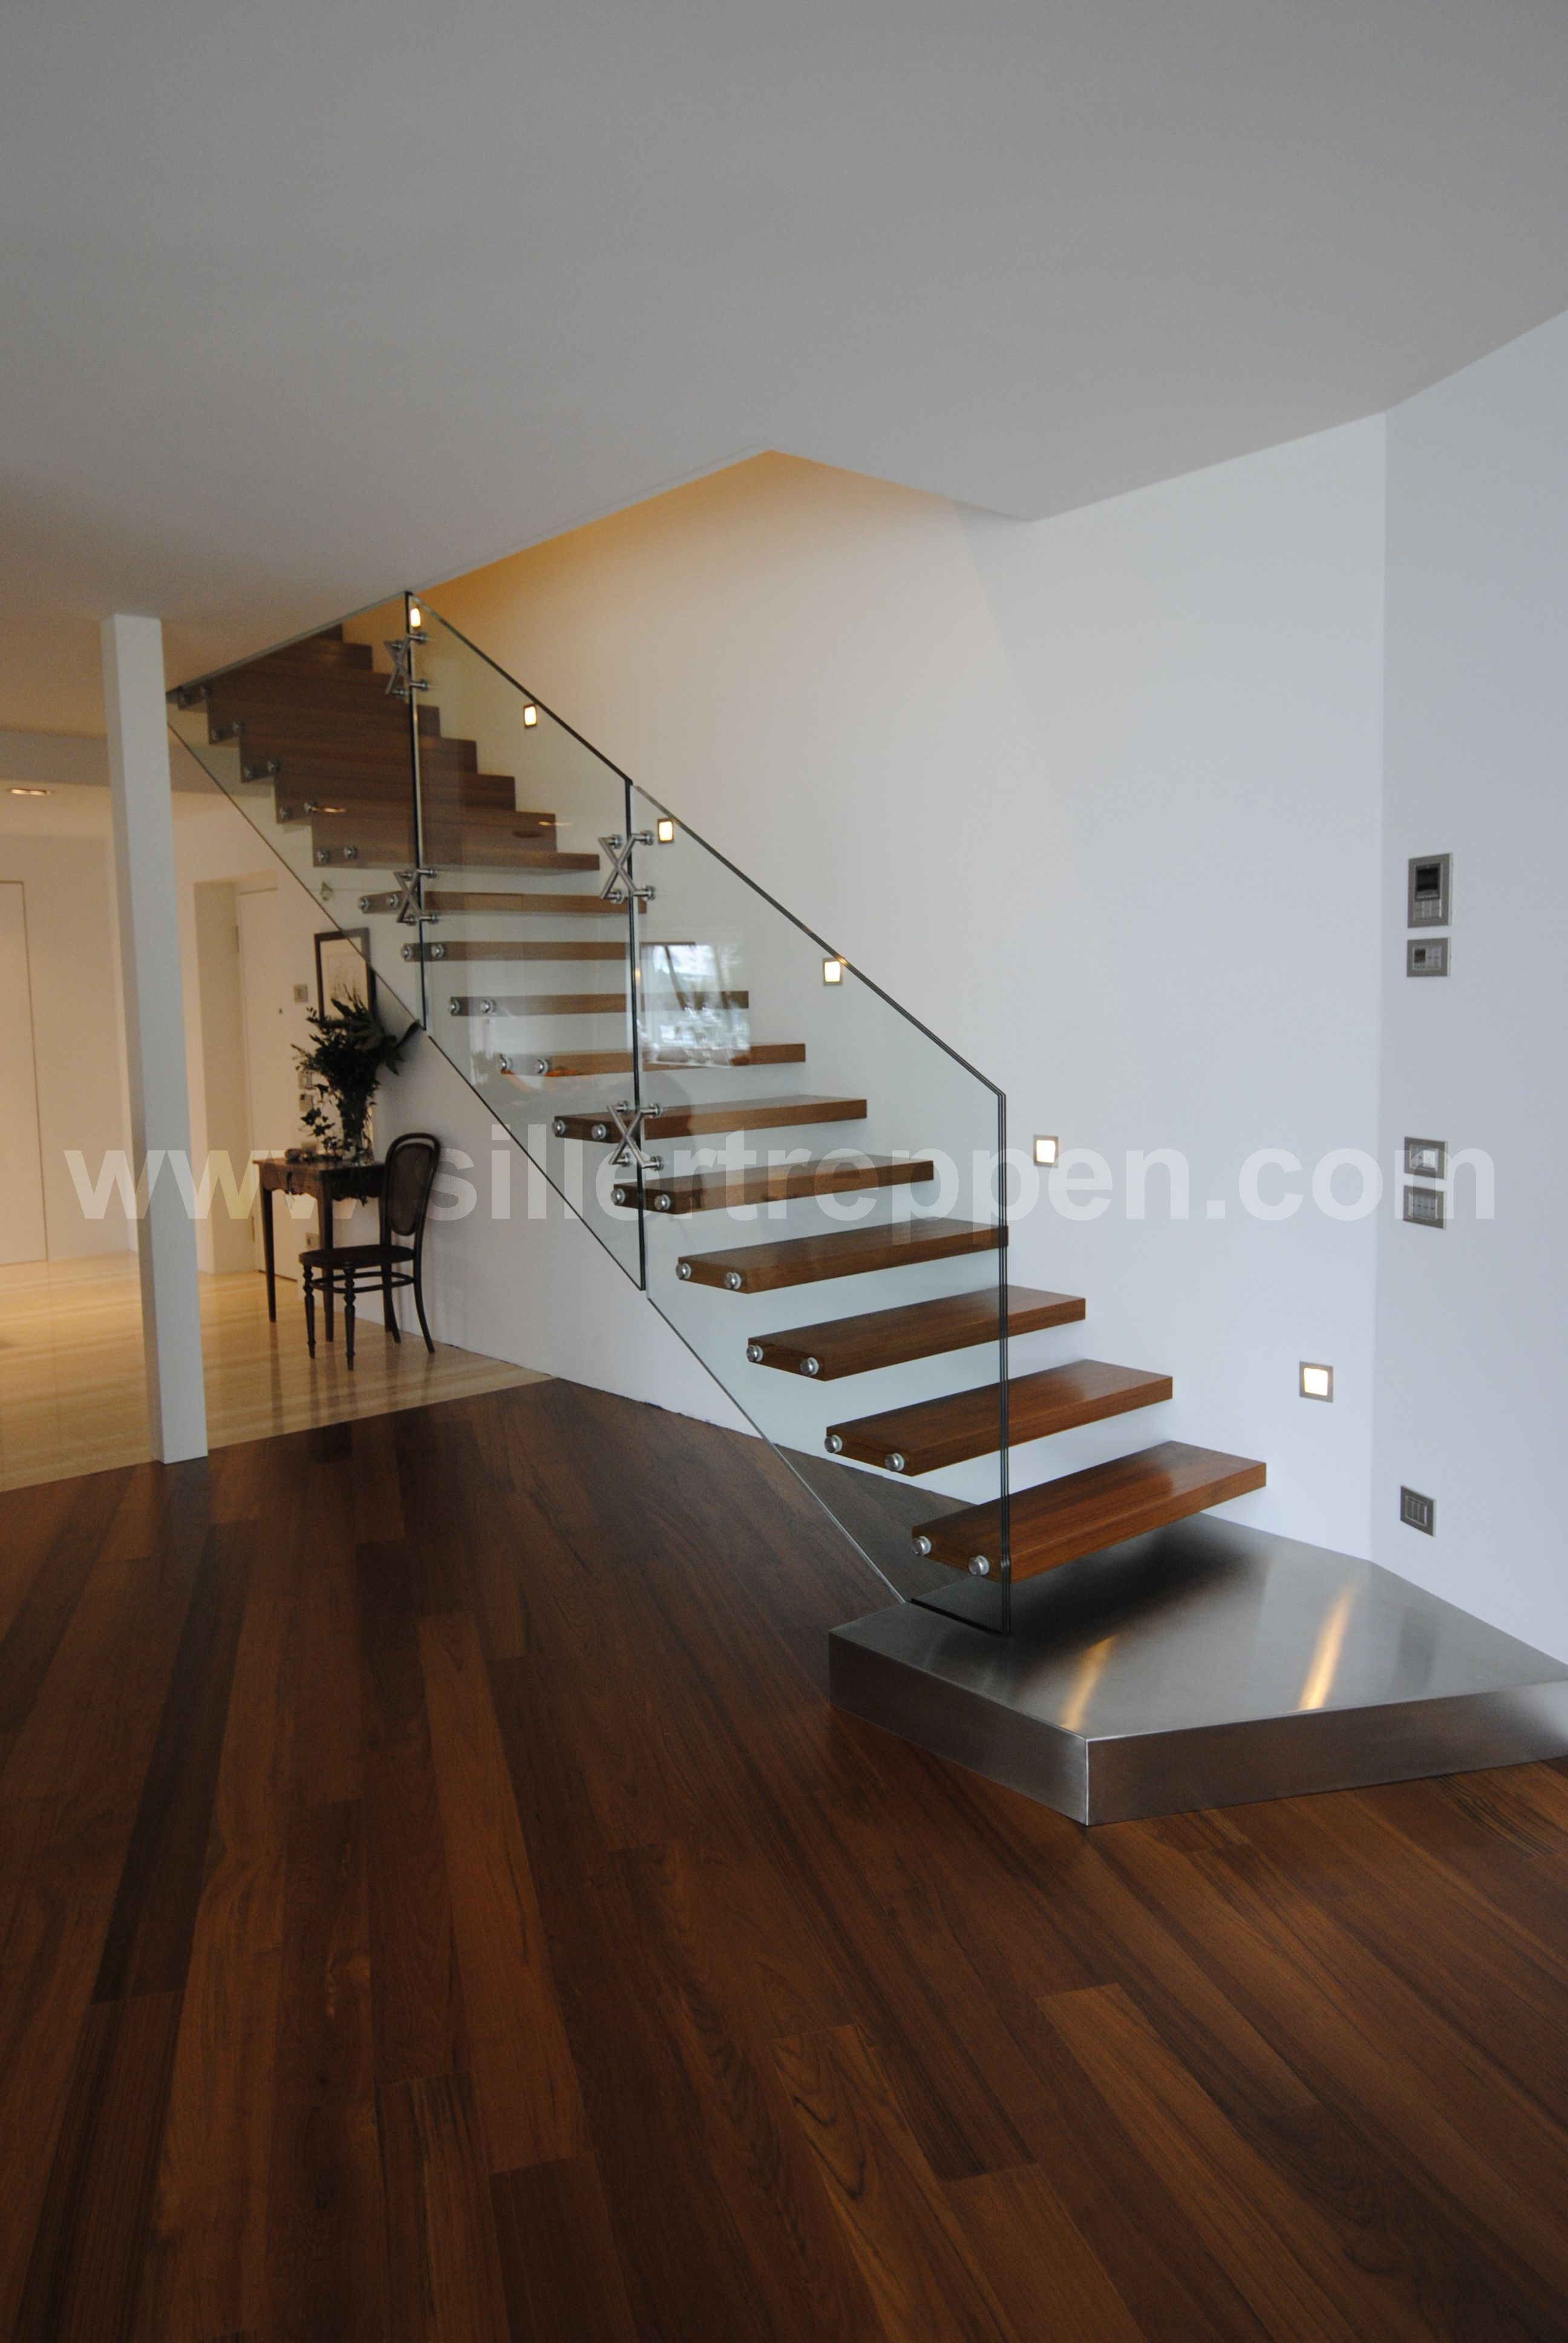 Stairs Designer Modern Floating Stair With Structural Glass Railing Wood